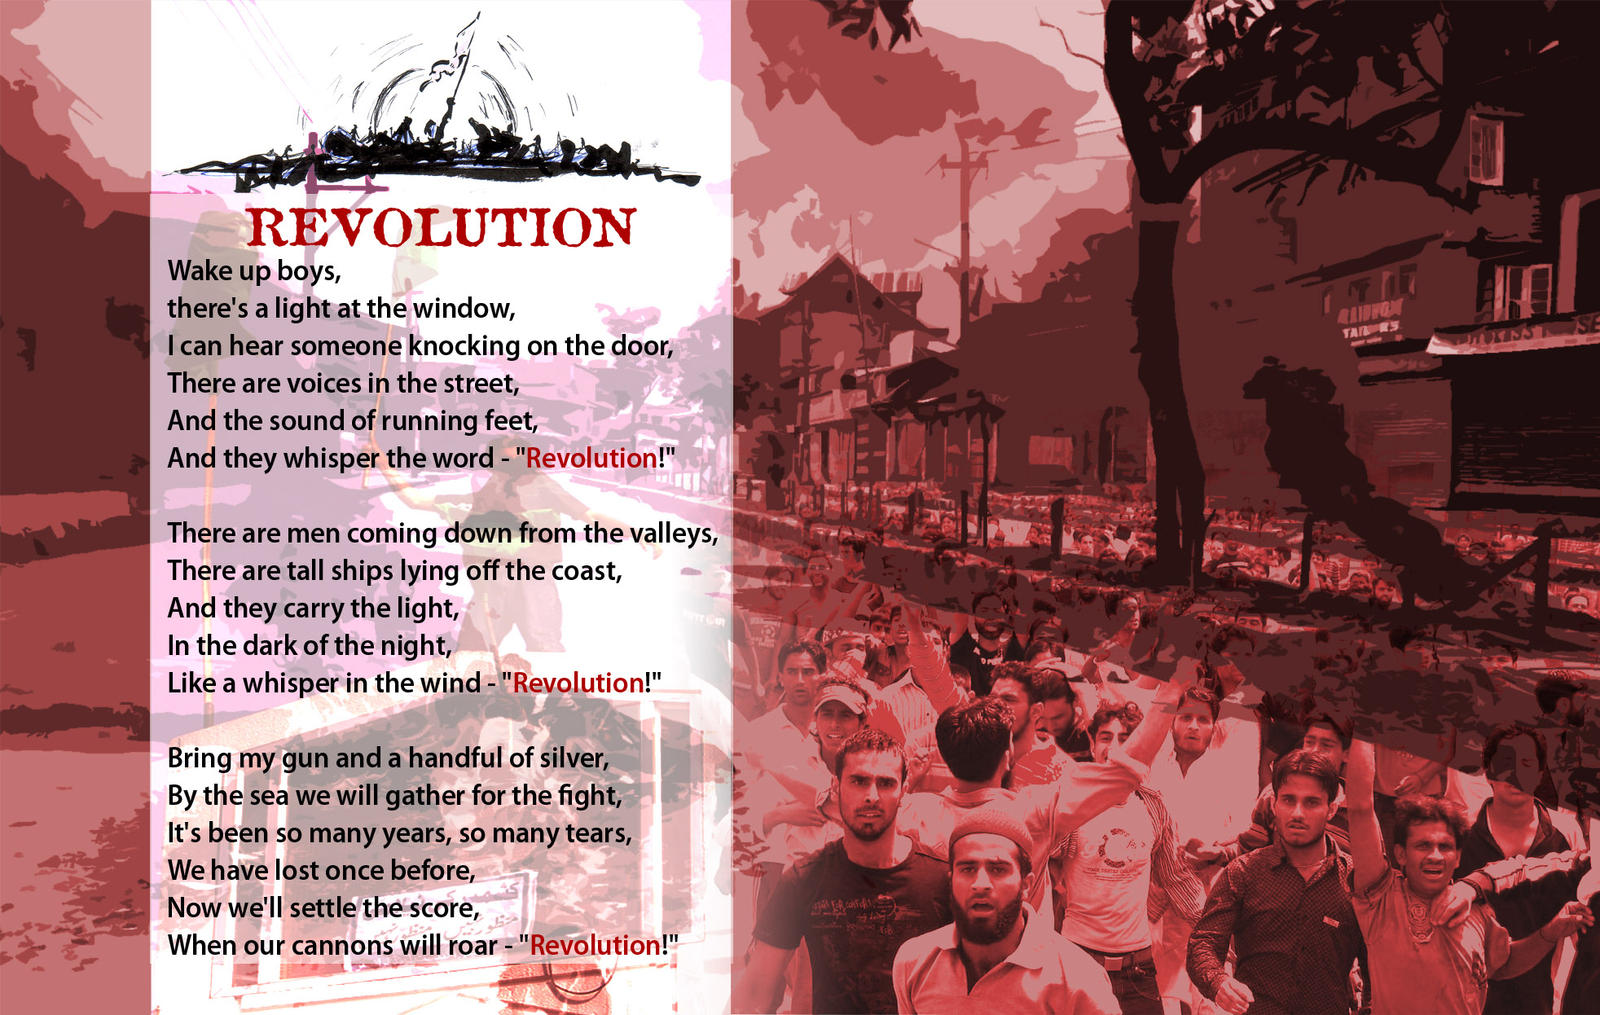 KASHMIR REVOLUTION by krishsajid